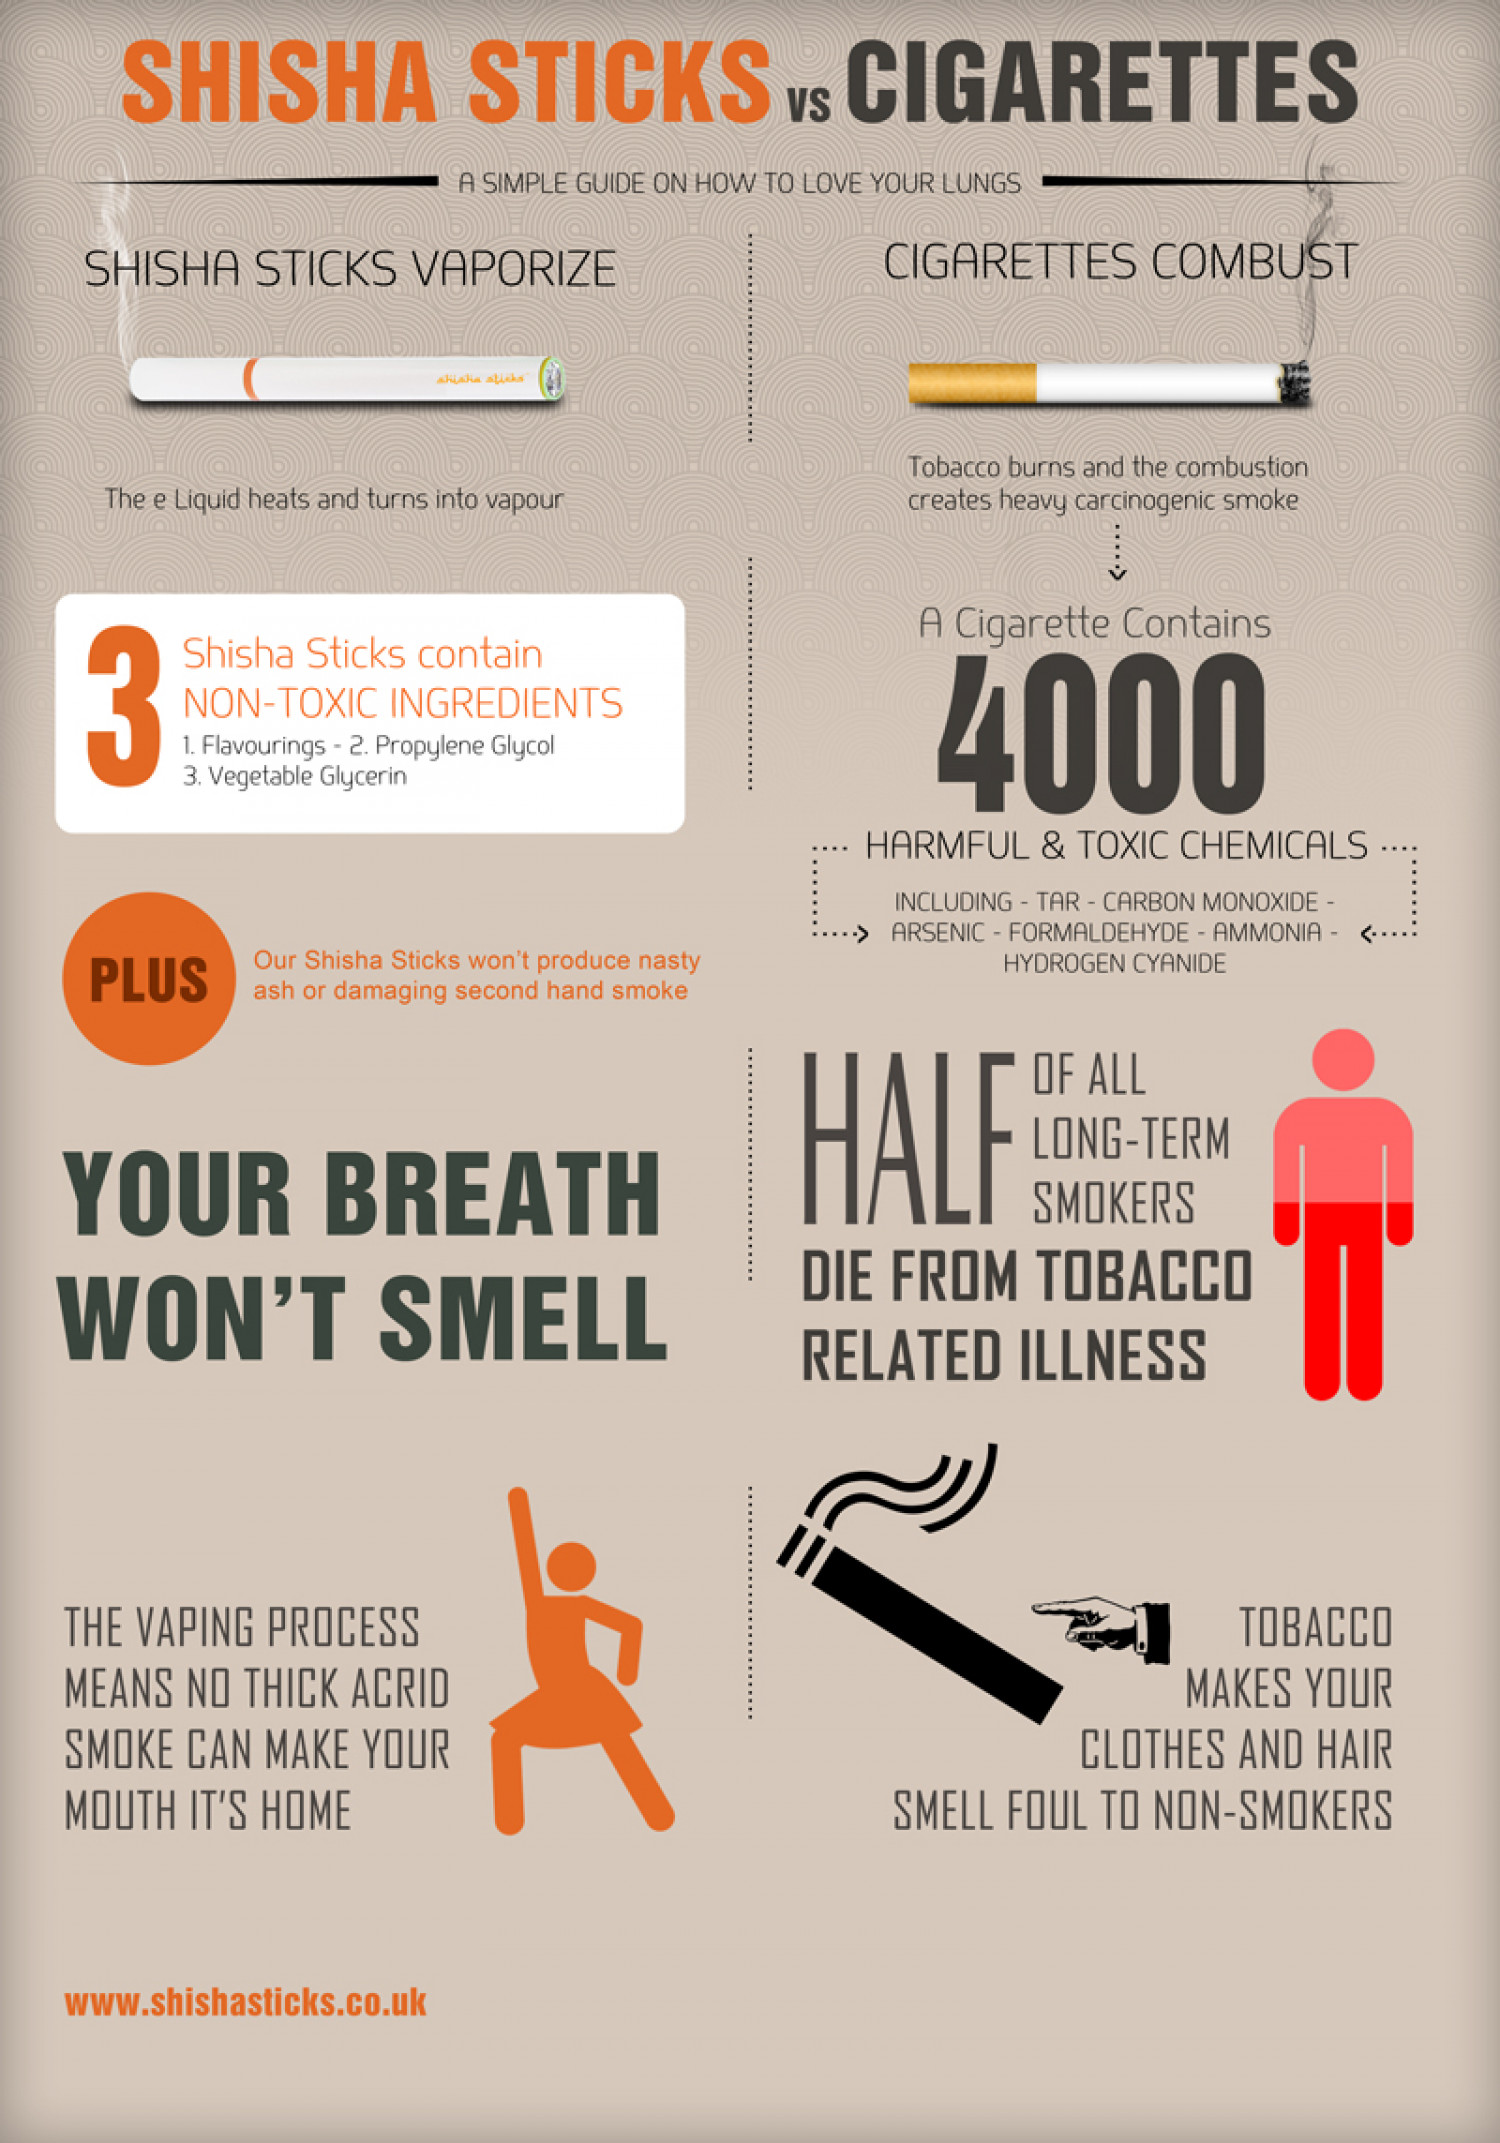 Shisha Sticks vs Cigarettes Infographic